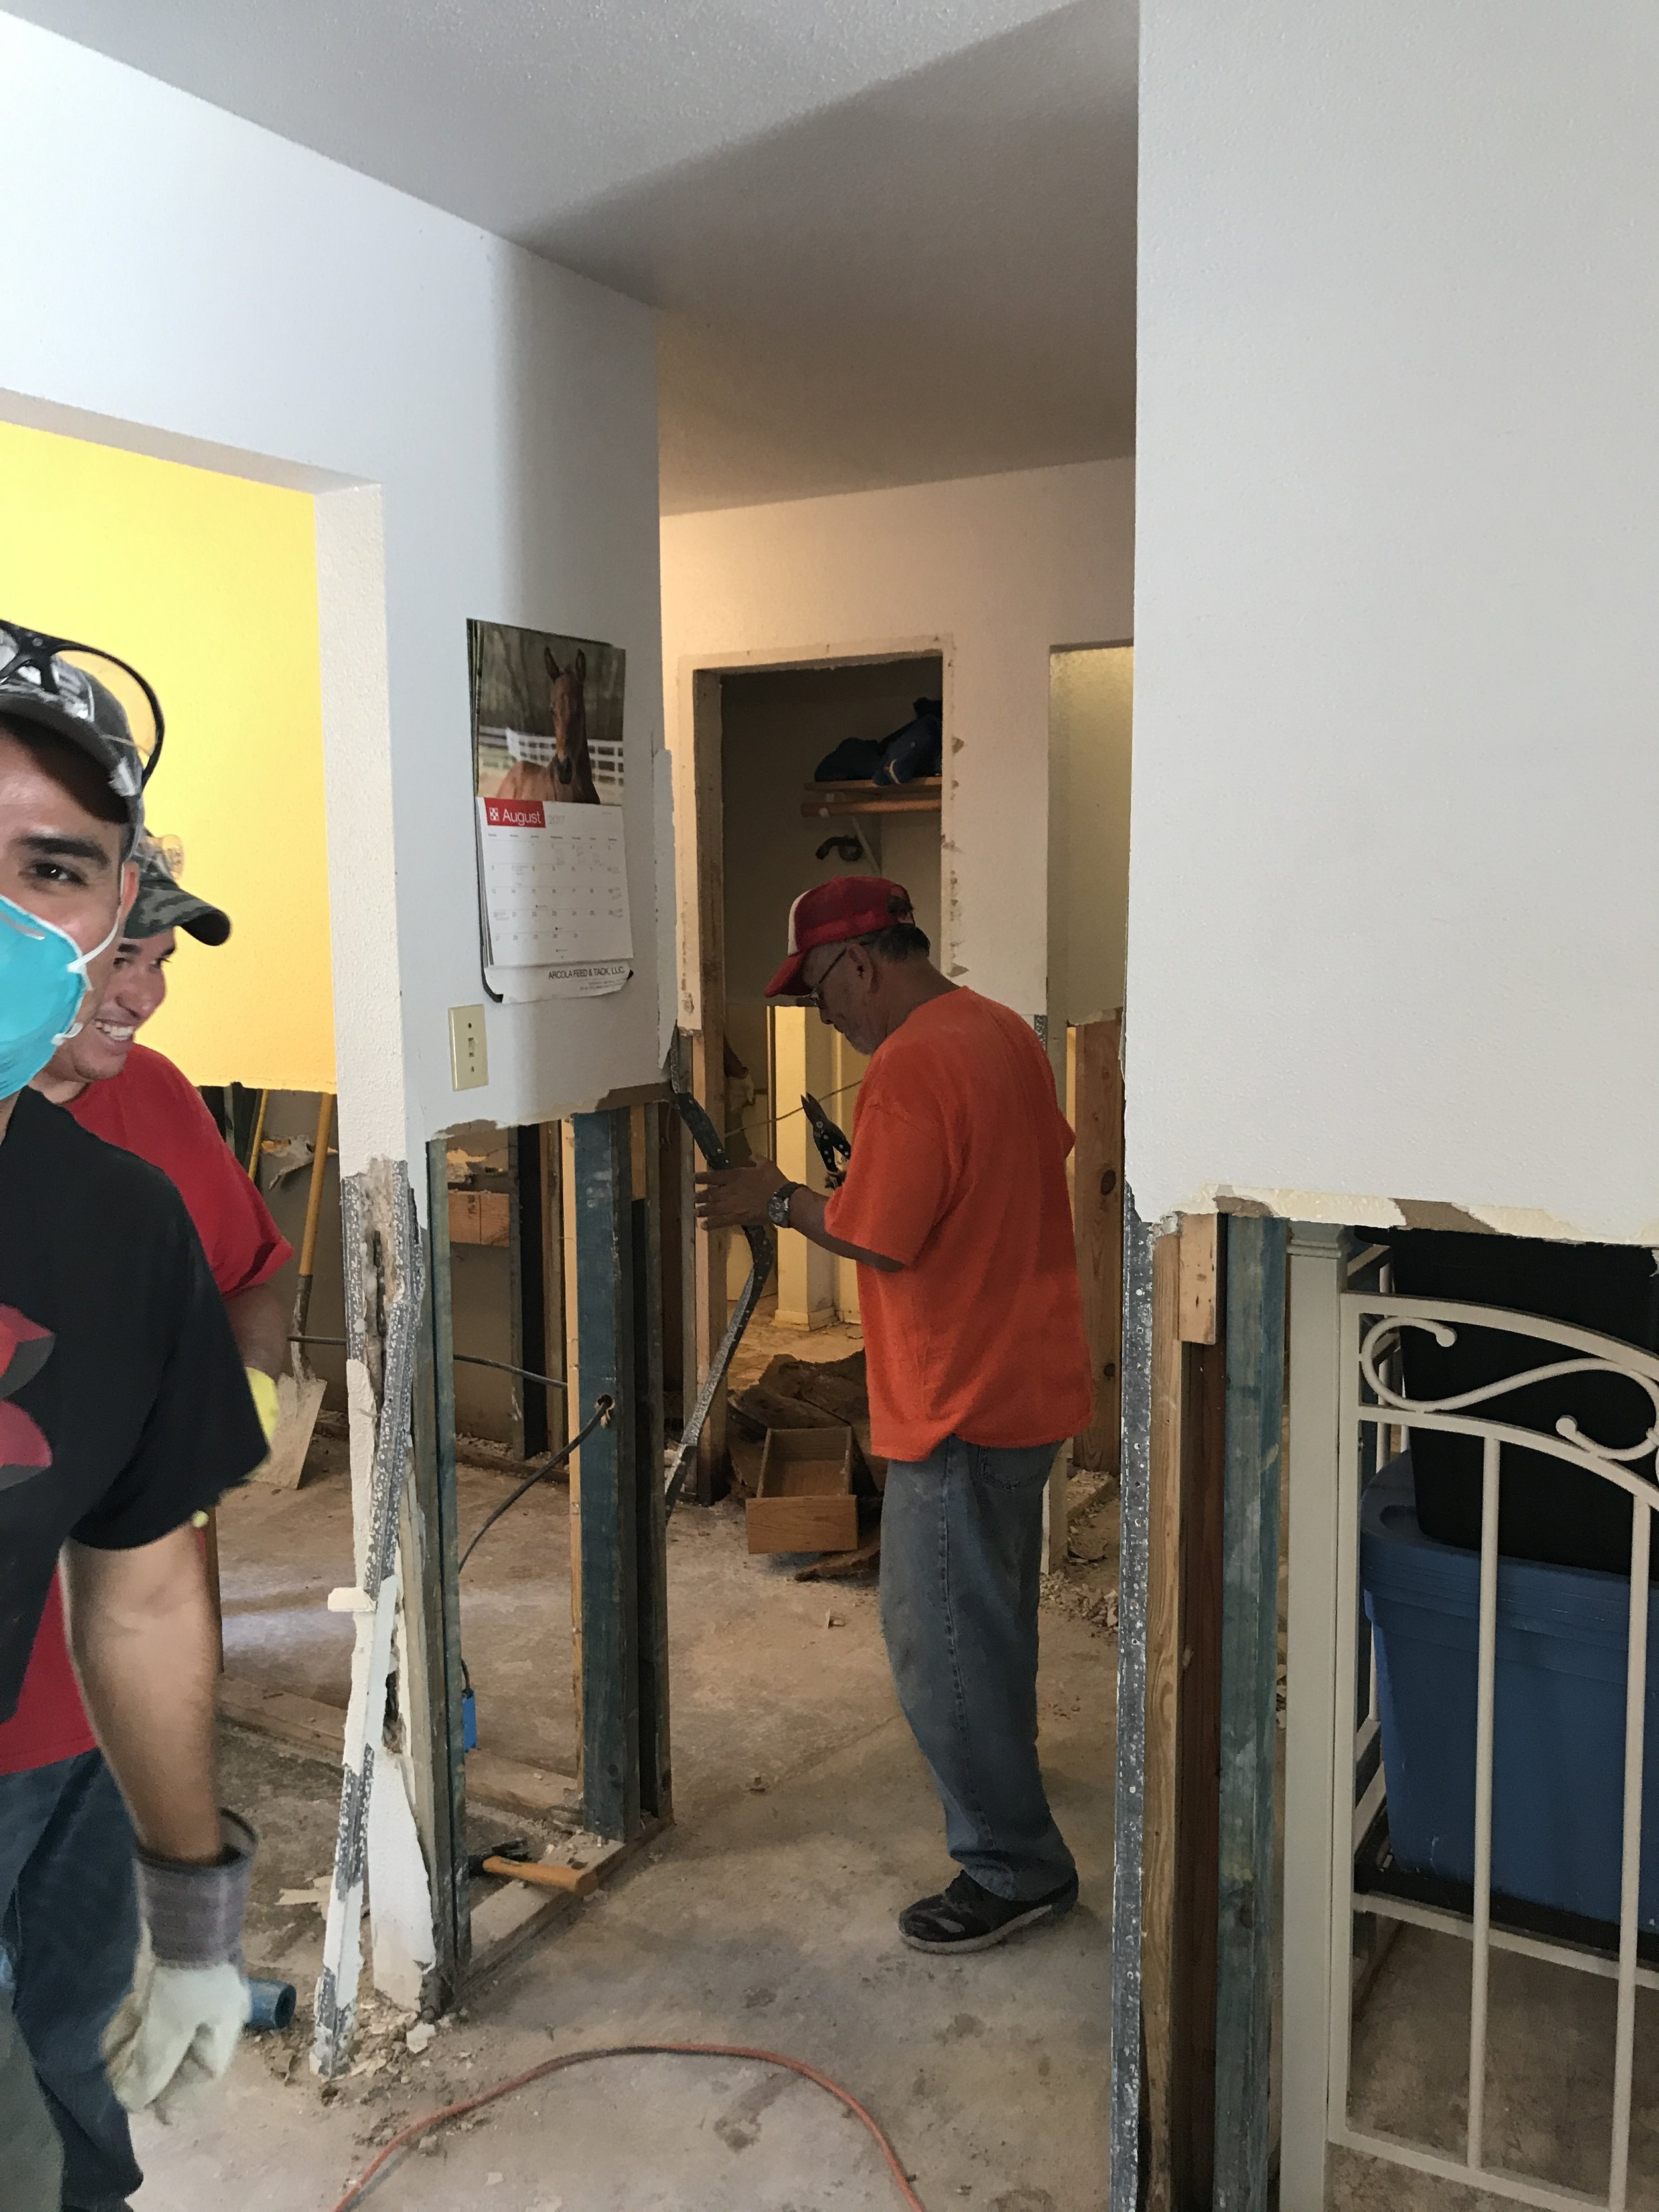 Removing sheetrock and edging